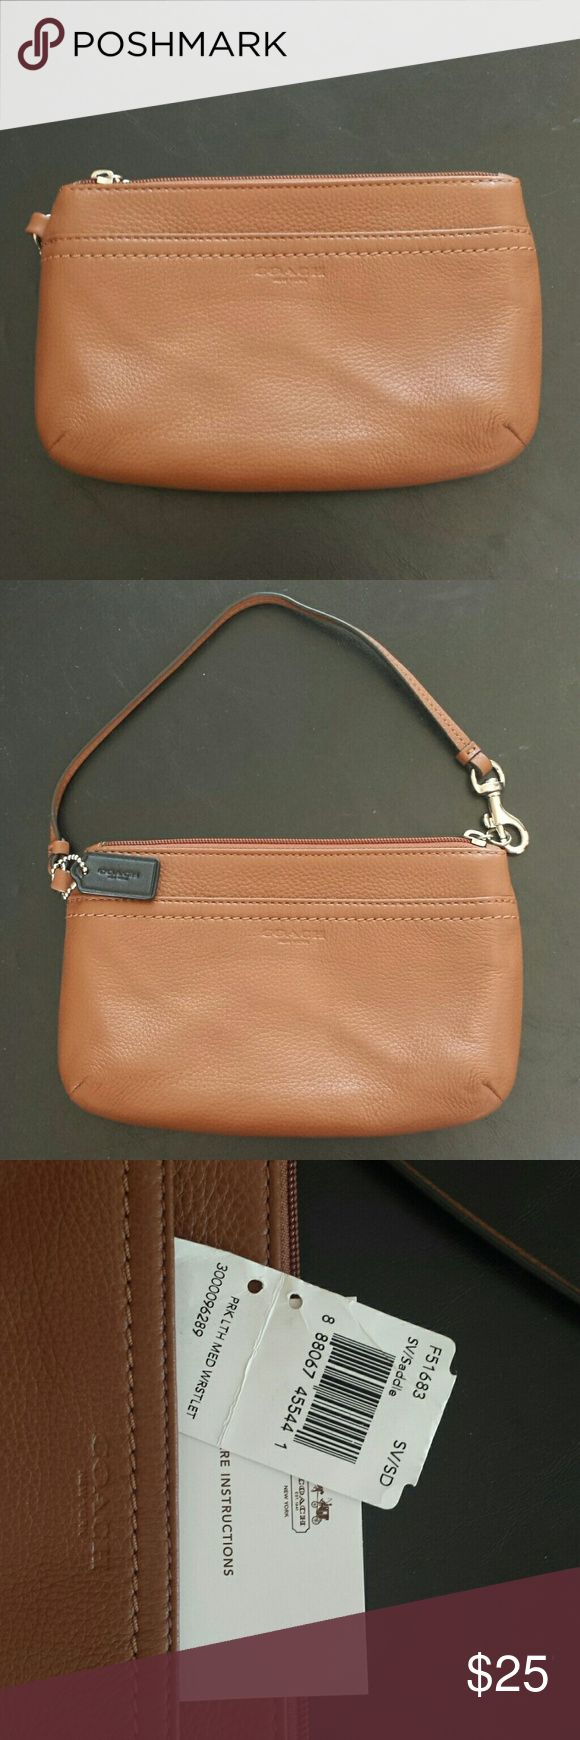 "Coach Wristlet~NWT Brand new with tags, Coach Park Leather medium wristlet.   This sweet purse measures approx. 7.5"" wide x 5"" tall.  Color is saddle. 100% authentic. Coach Bags Clutches & Wristlets"